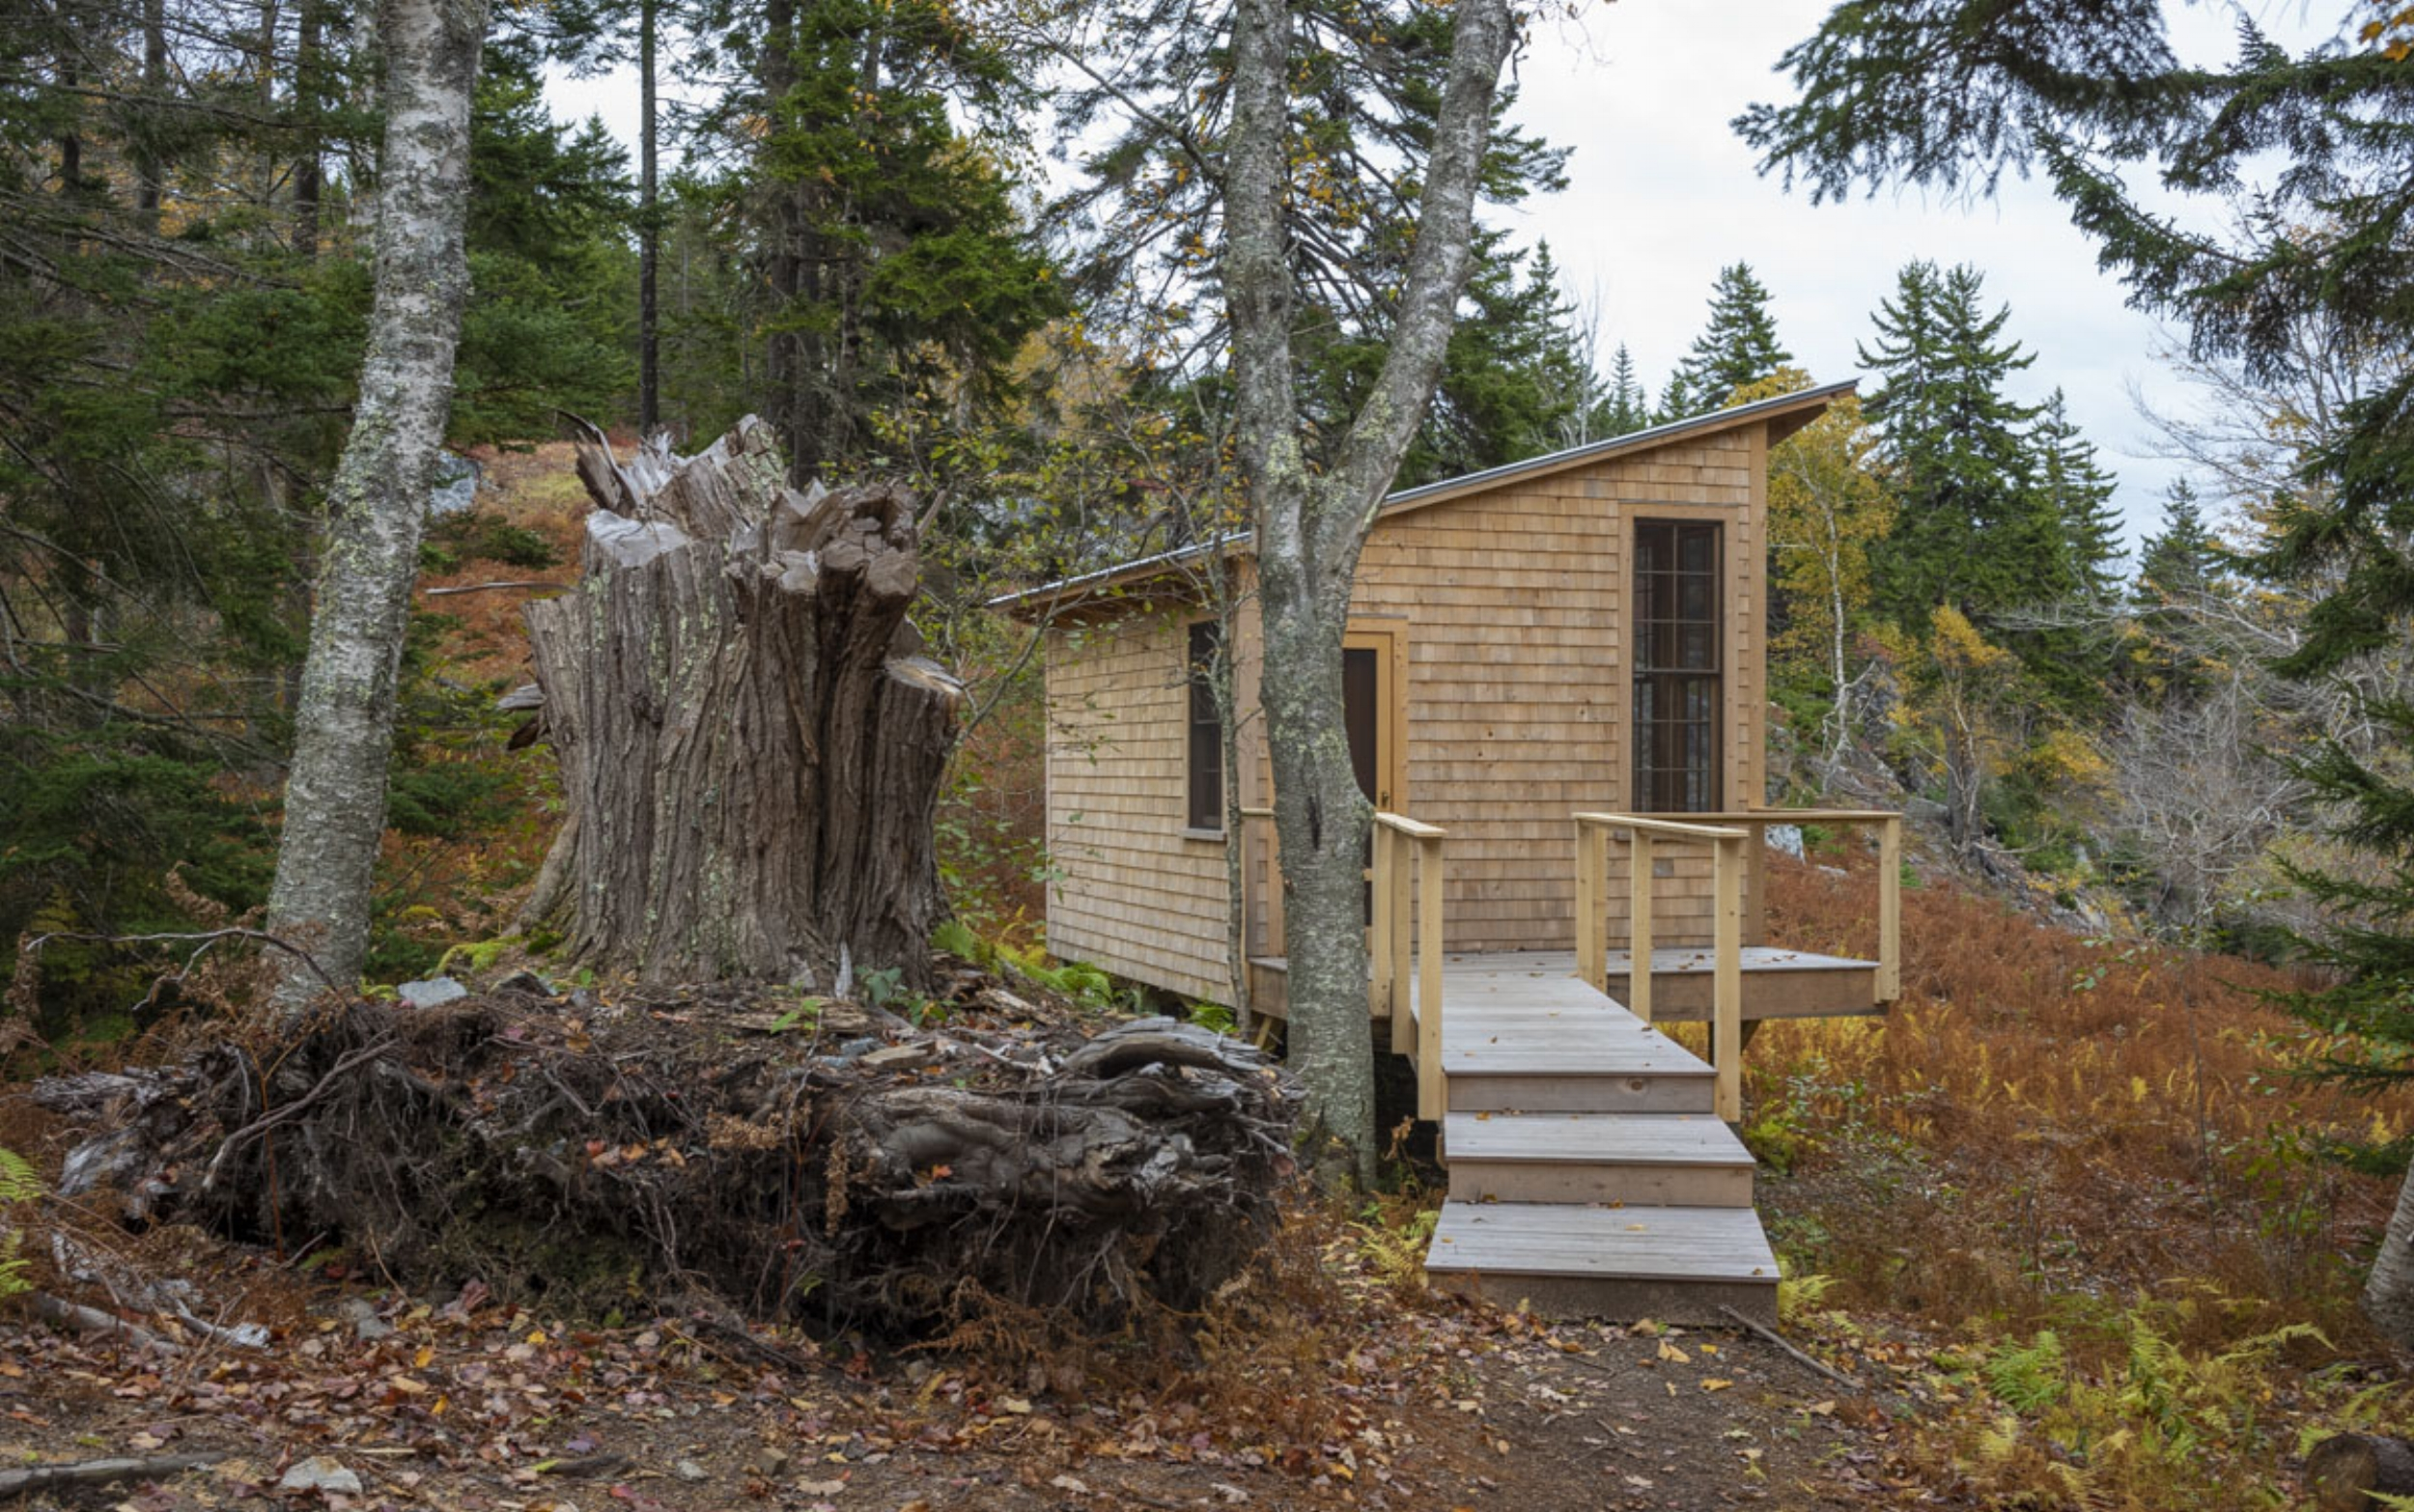 phopro-ext-cove_cabin_large_stump-150ppi8x5.jpg